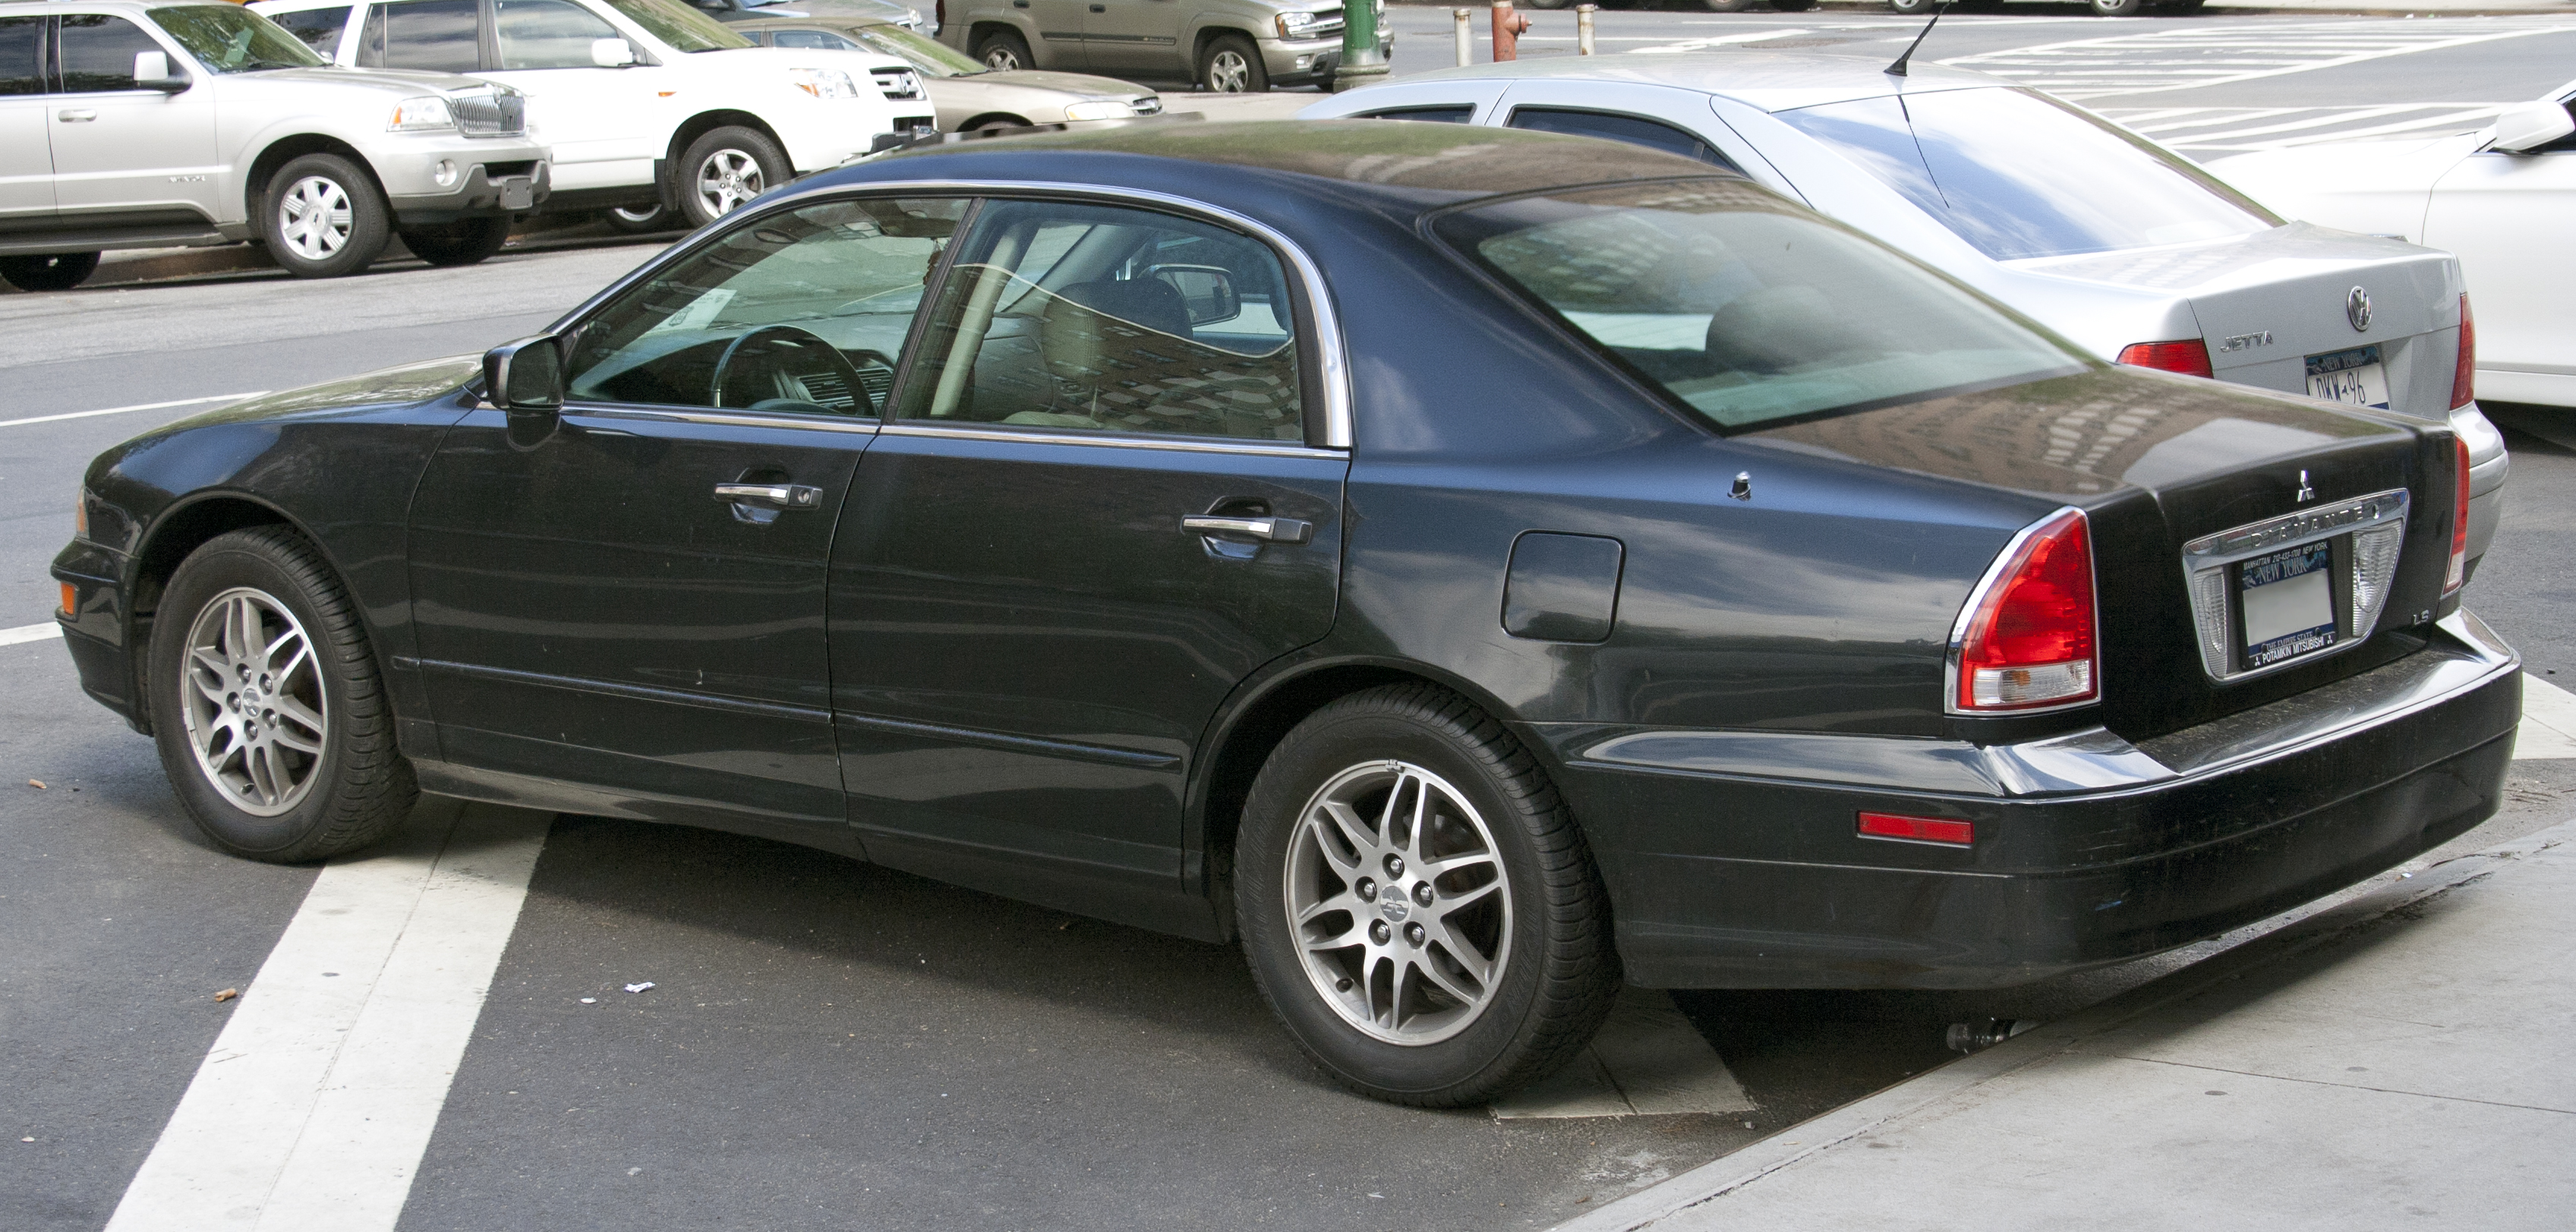 file:2003 mitsubishi diamante ls rear - wikimedia commons